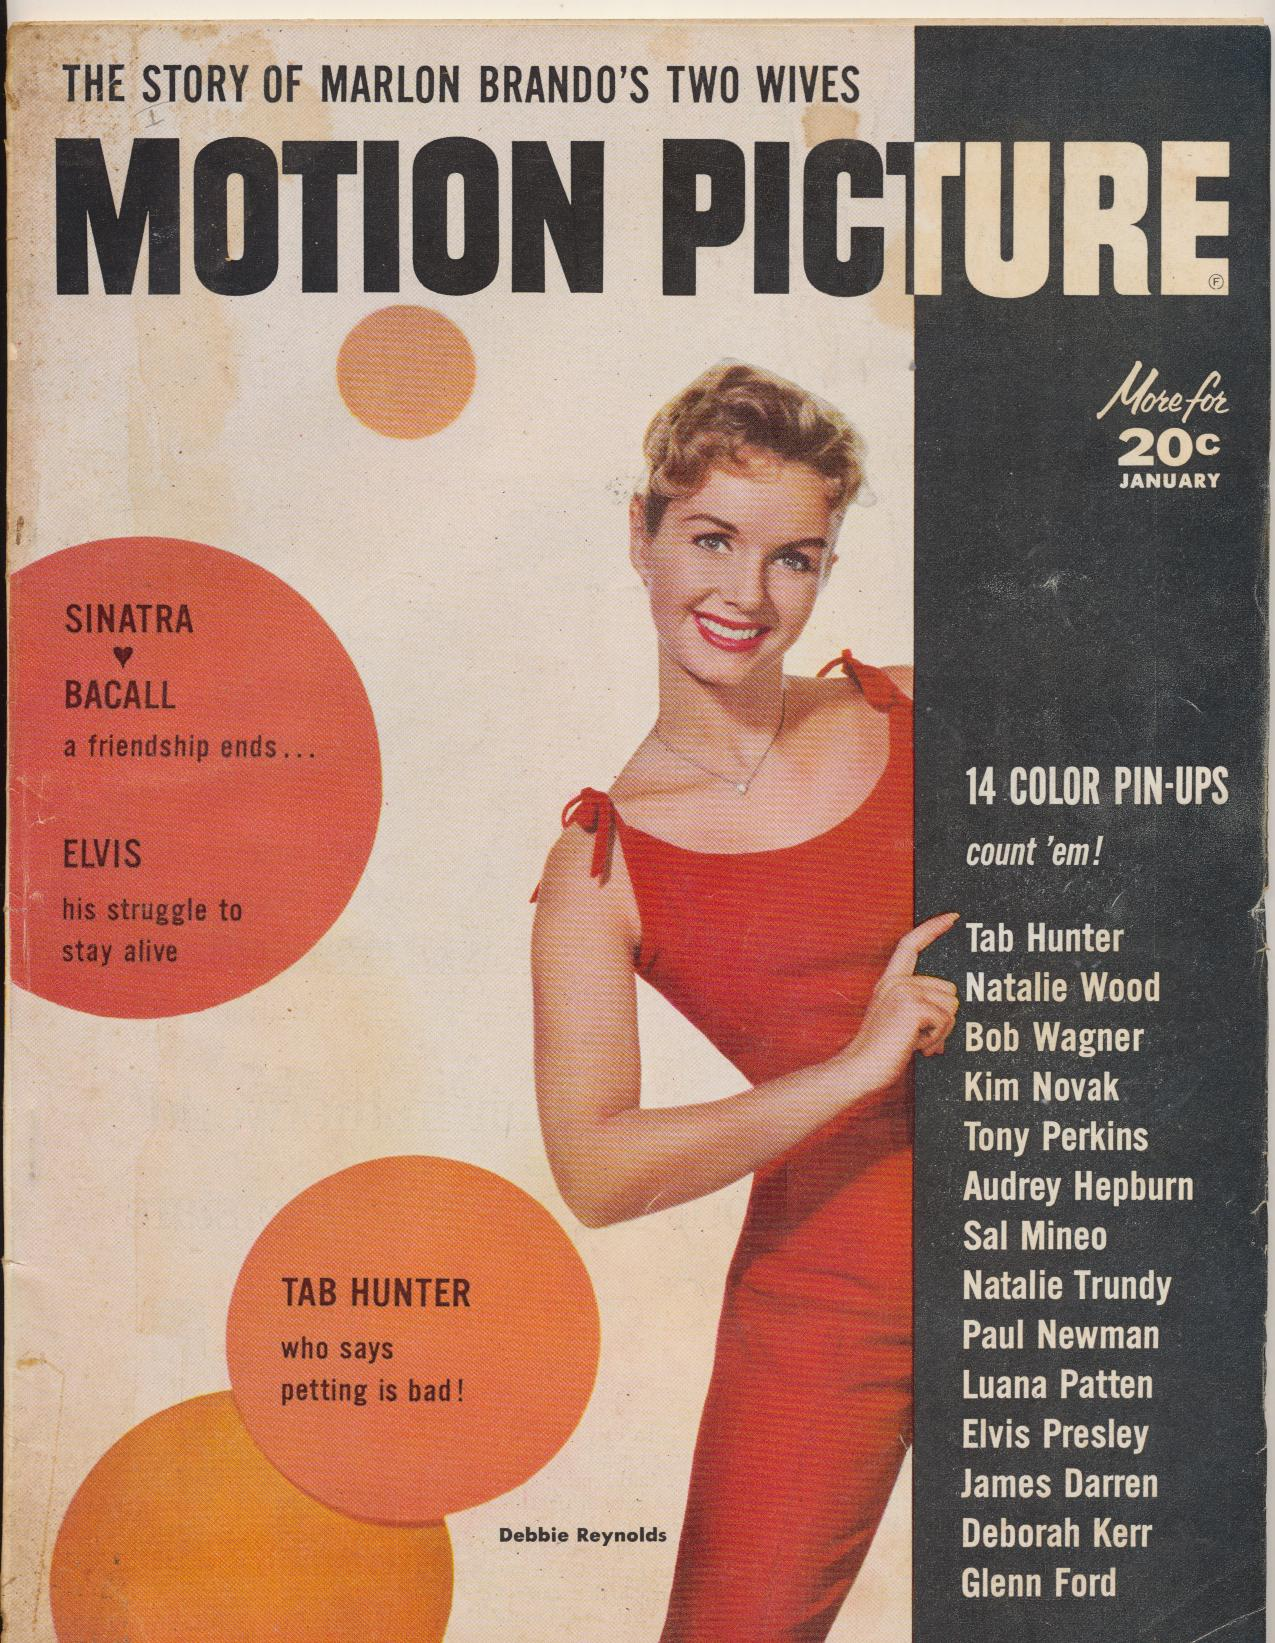 Jan 1958 Motion Picture Fan Mag - Elvis Struggles To Stay Alive